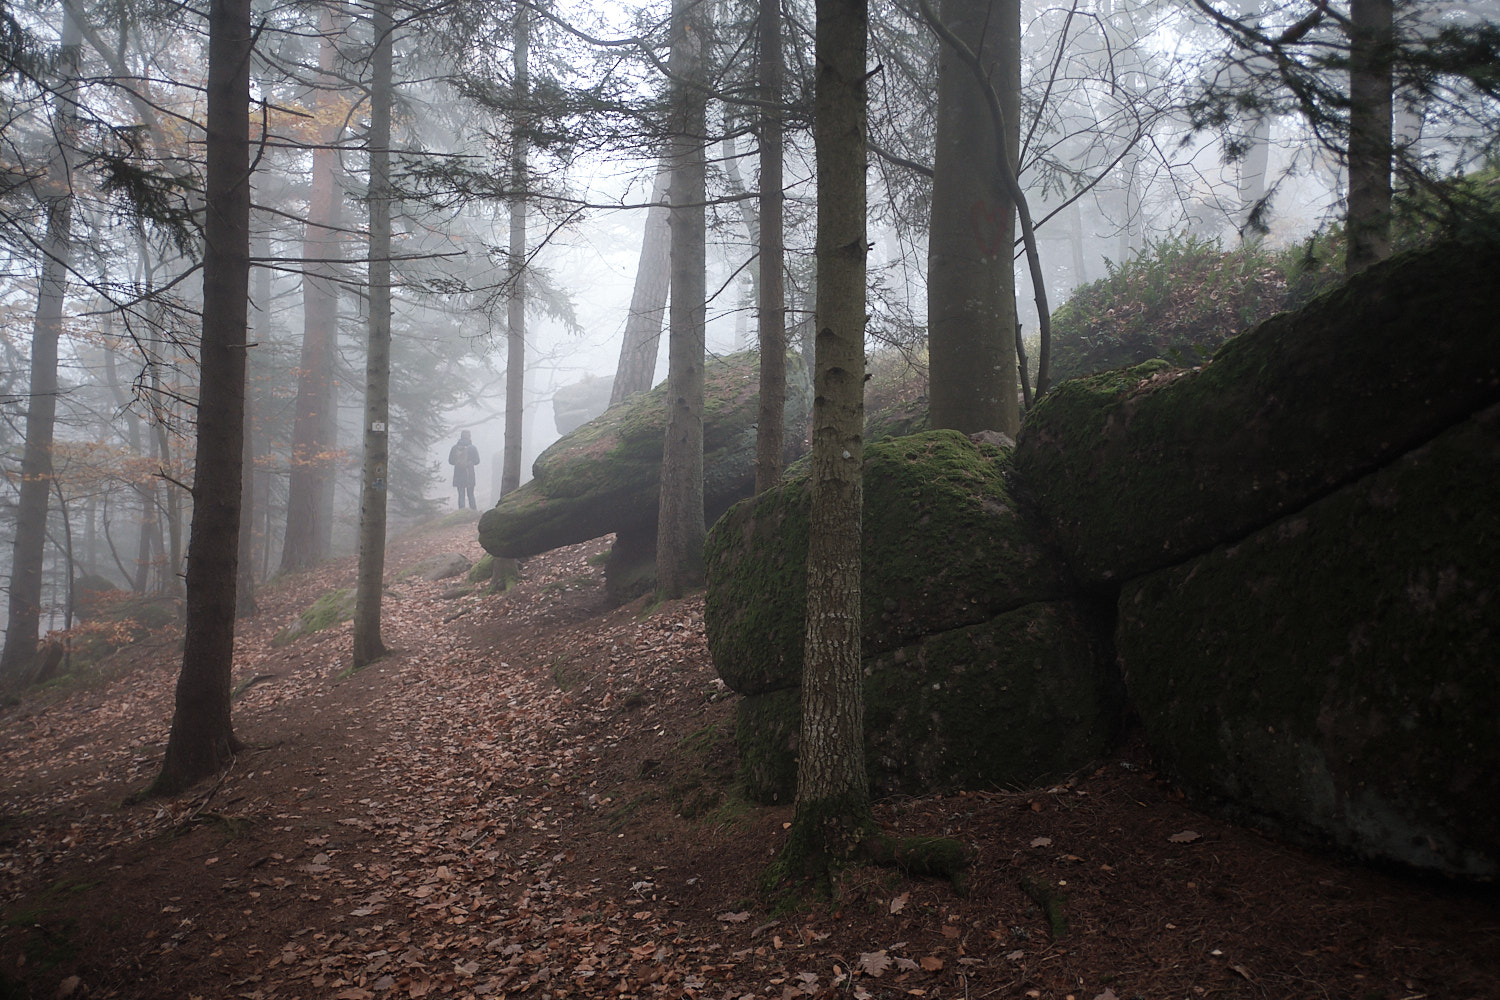 Mont Sainte-Odile and the misty Vosges in autumn